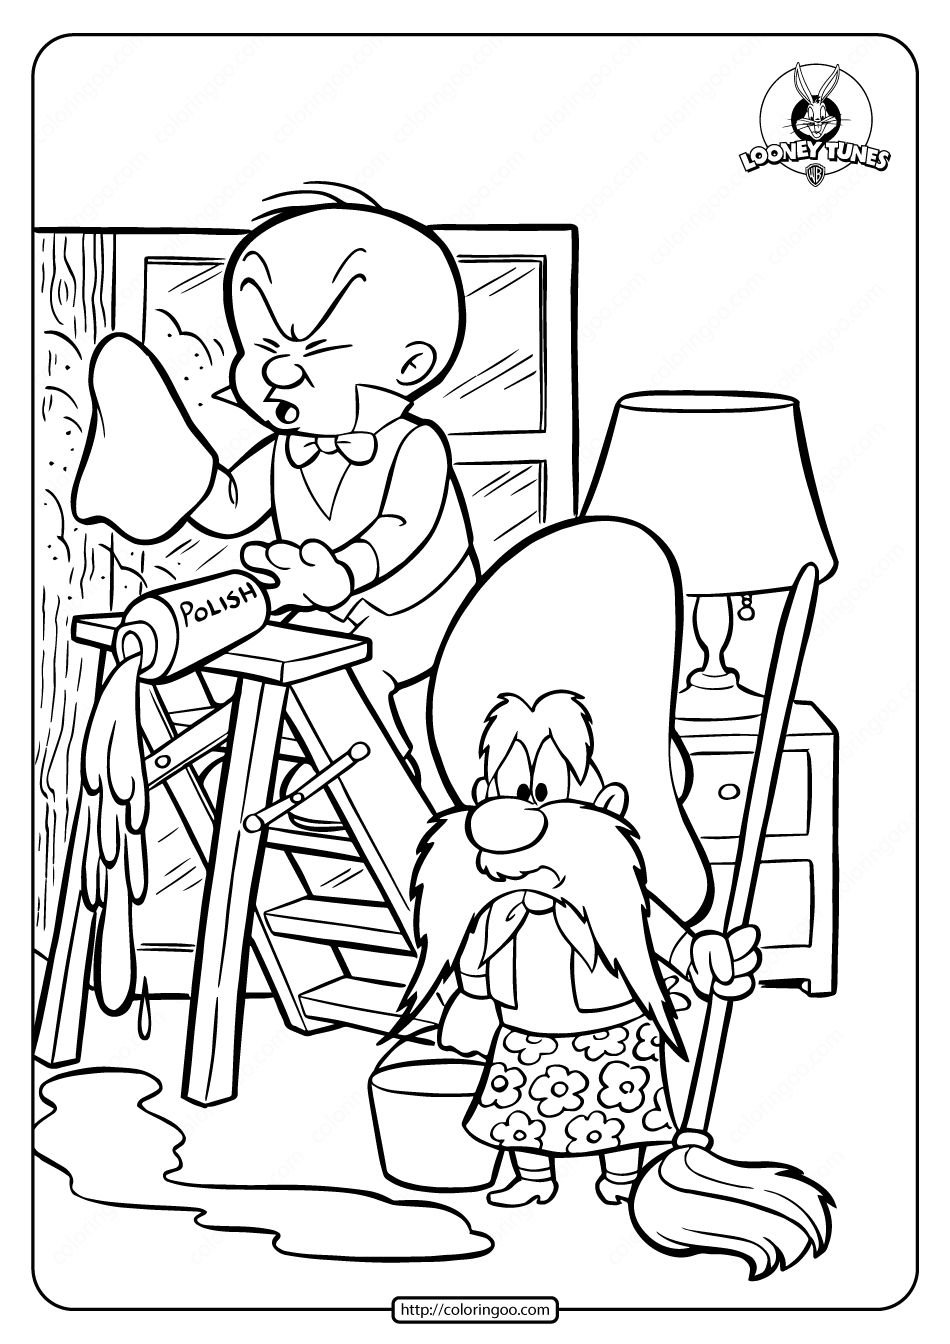 Printable Yosemite Sam Coloring Page